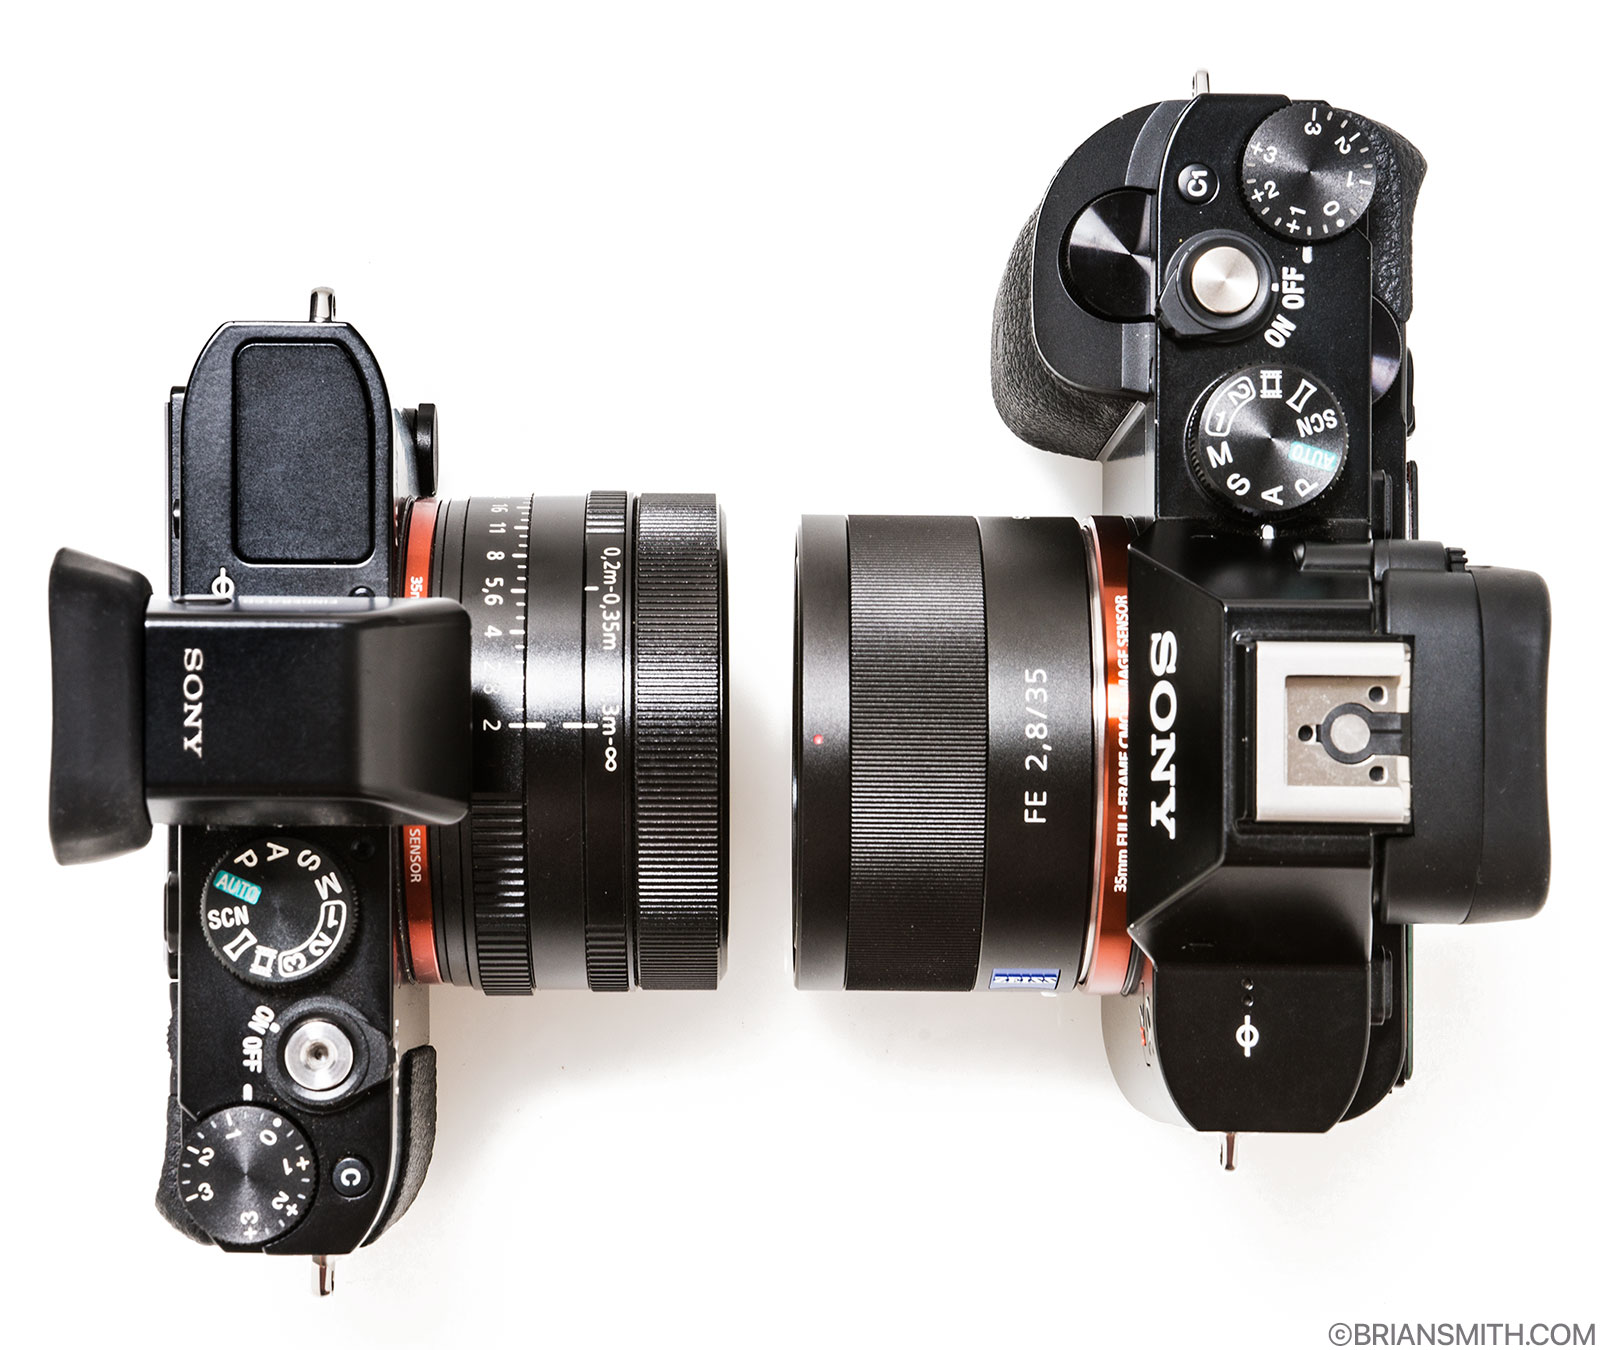 Sony RX1 and a7R size comparison